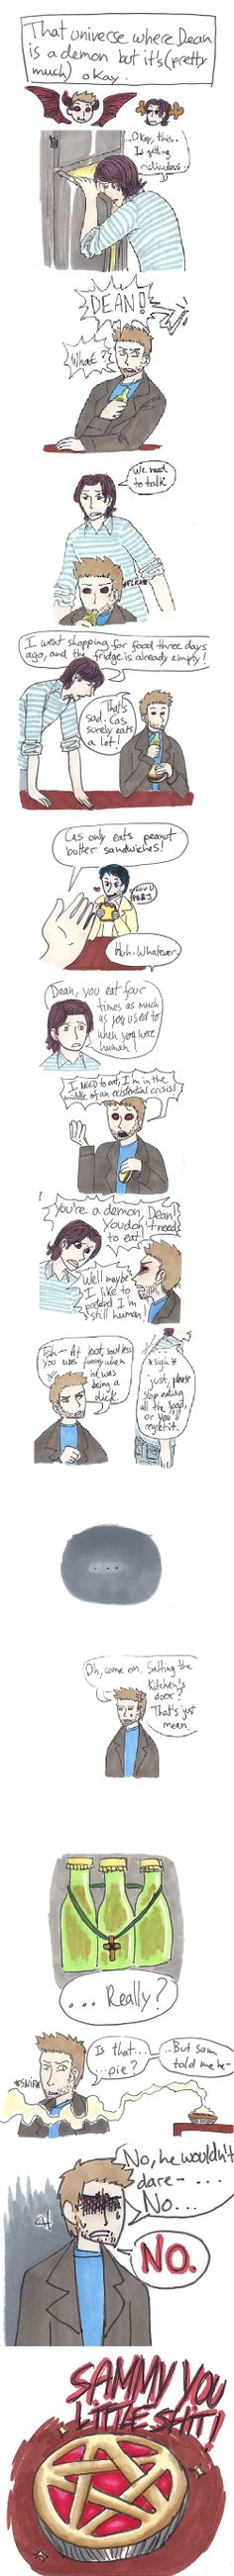 """That universe where Dean is a demon, but it's (pretty much) okay."" 